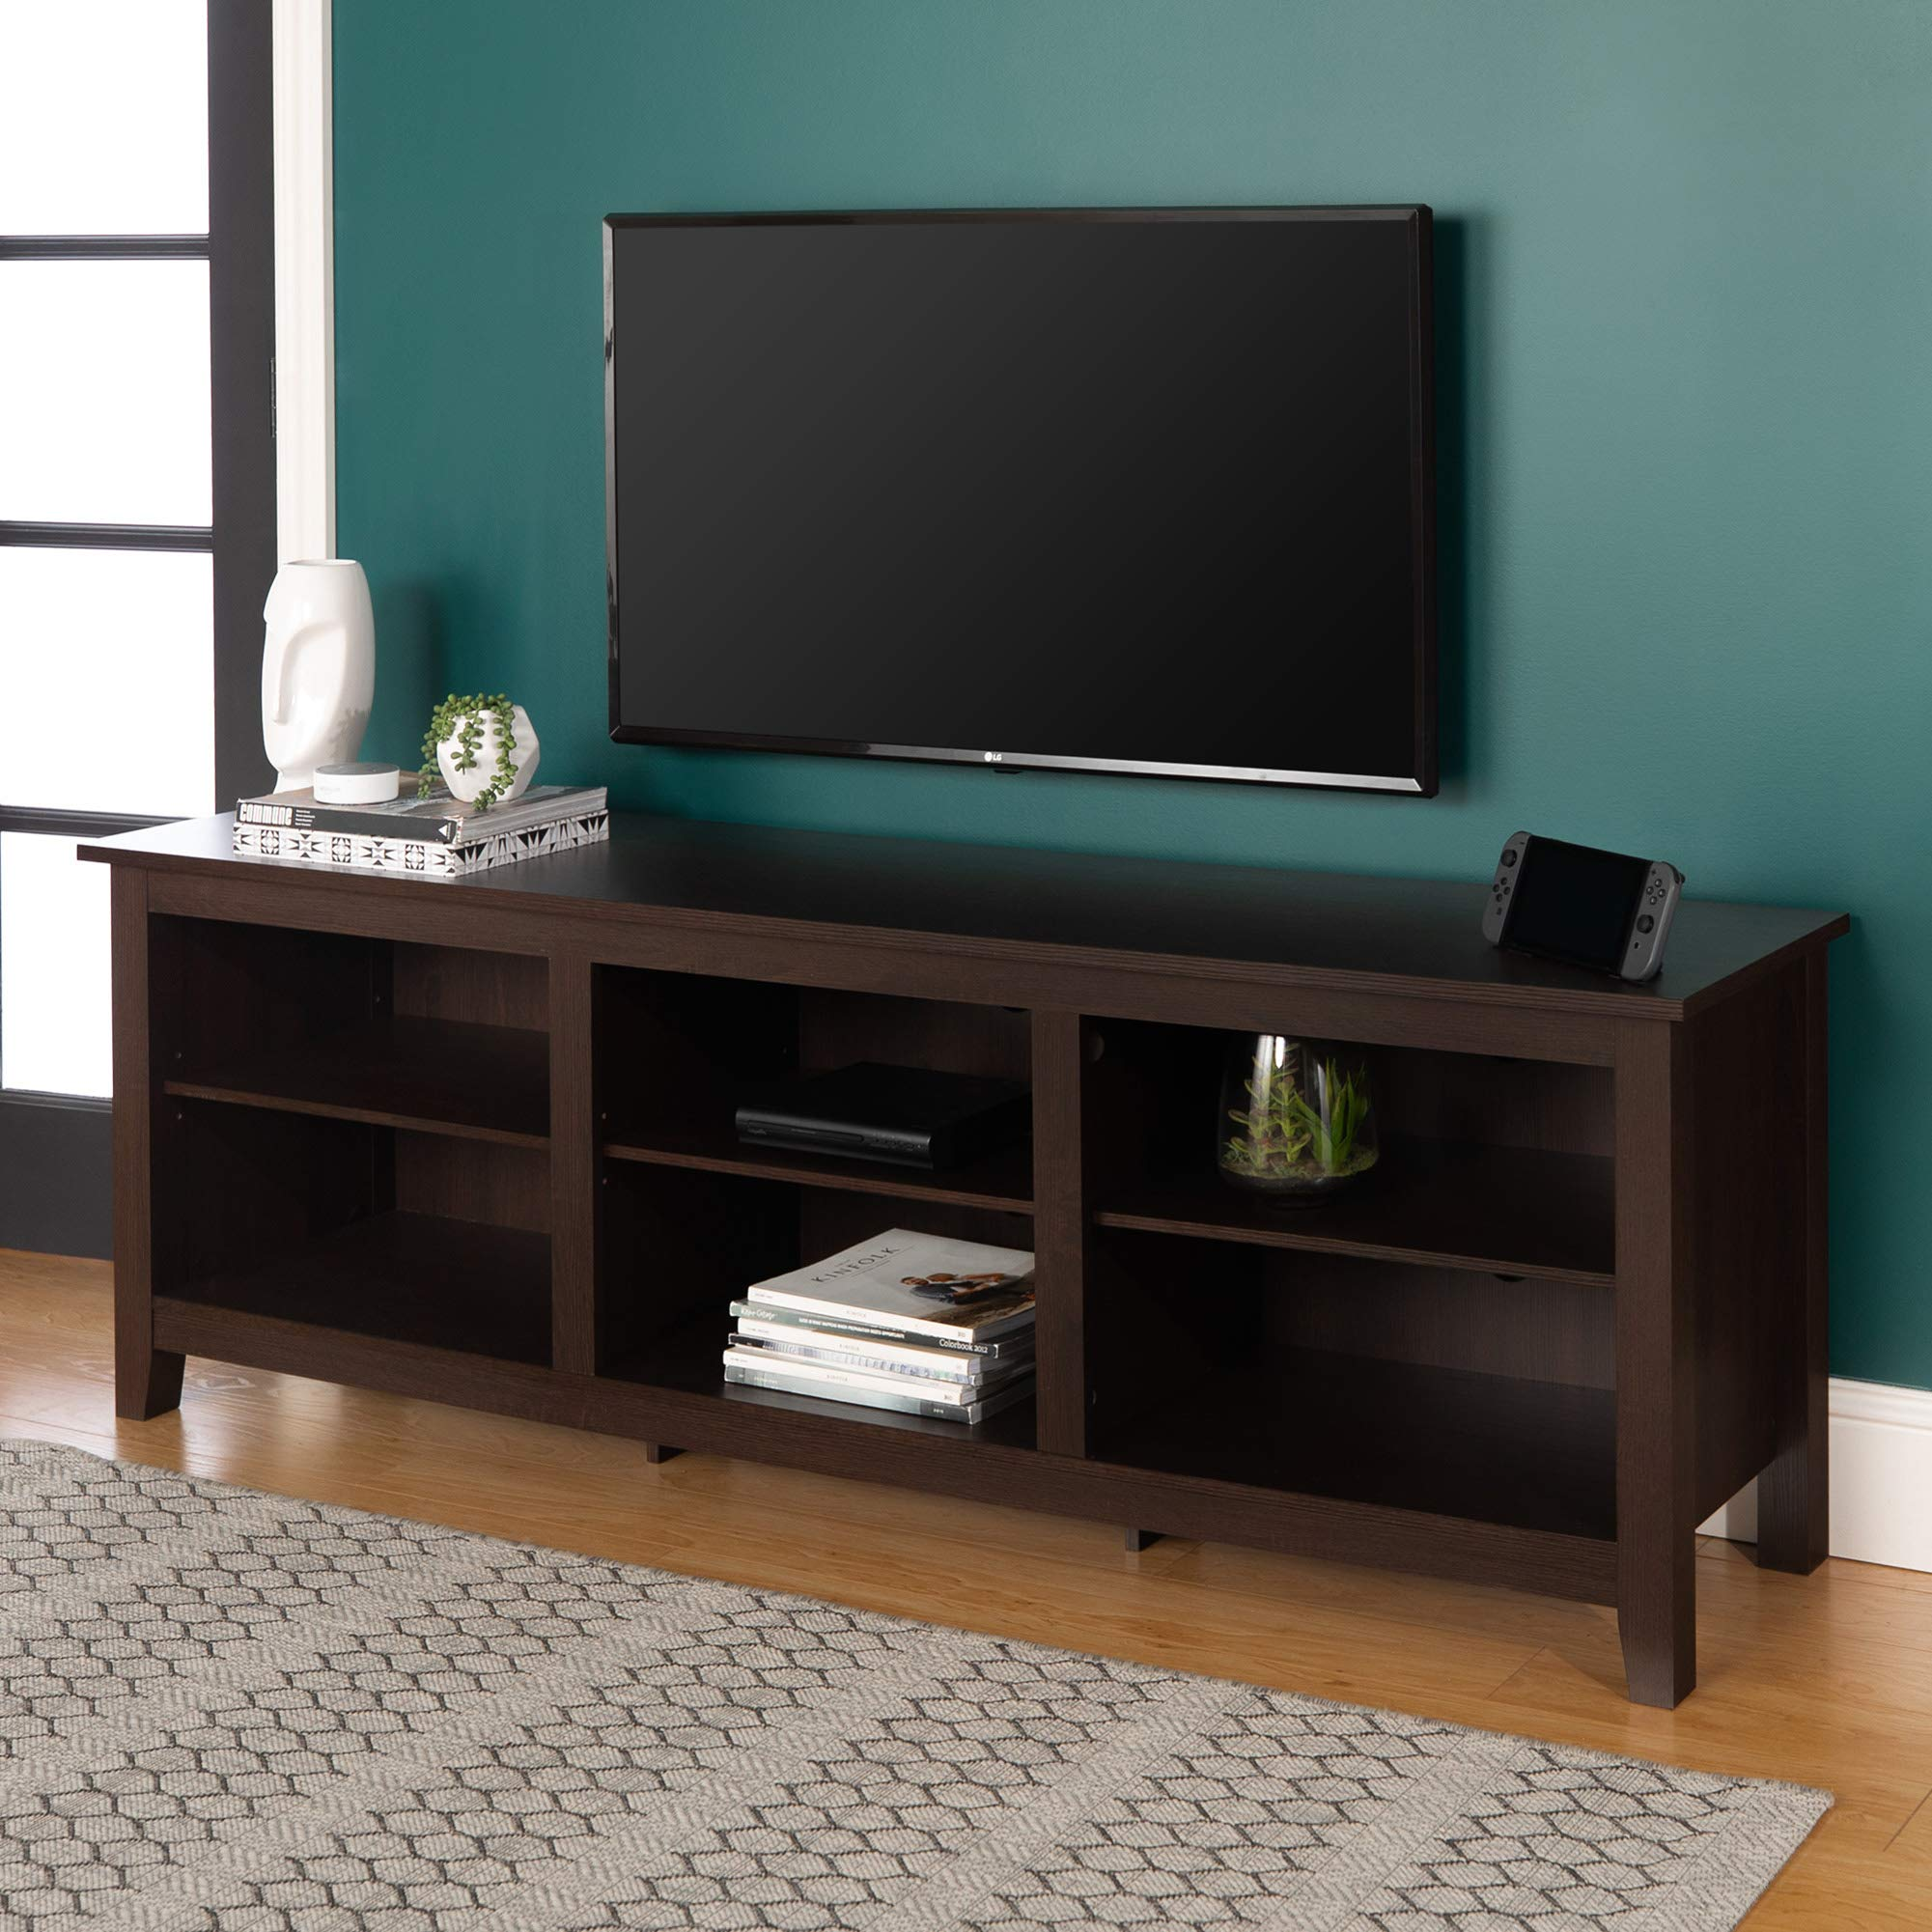 WE Furniture Minimal Farmhouse Wood Stand for TV's up to 78'' Living Room Storage, 70 Inch, Espresso Brown by WE Furniture